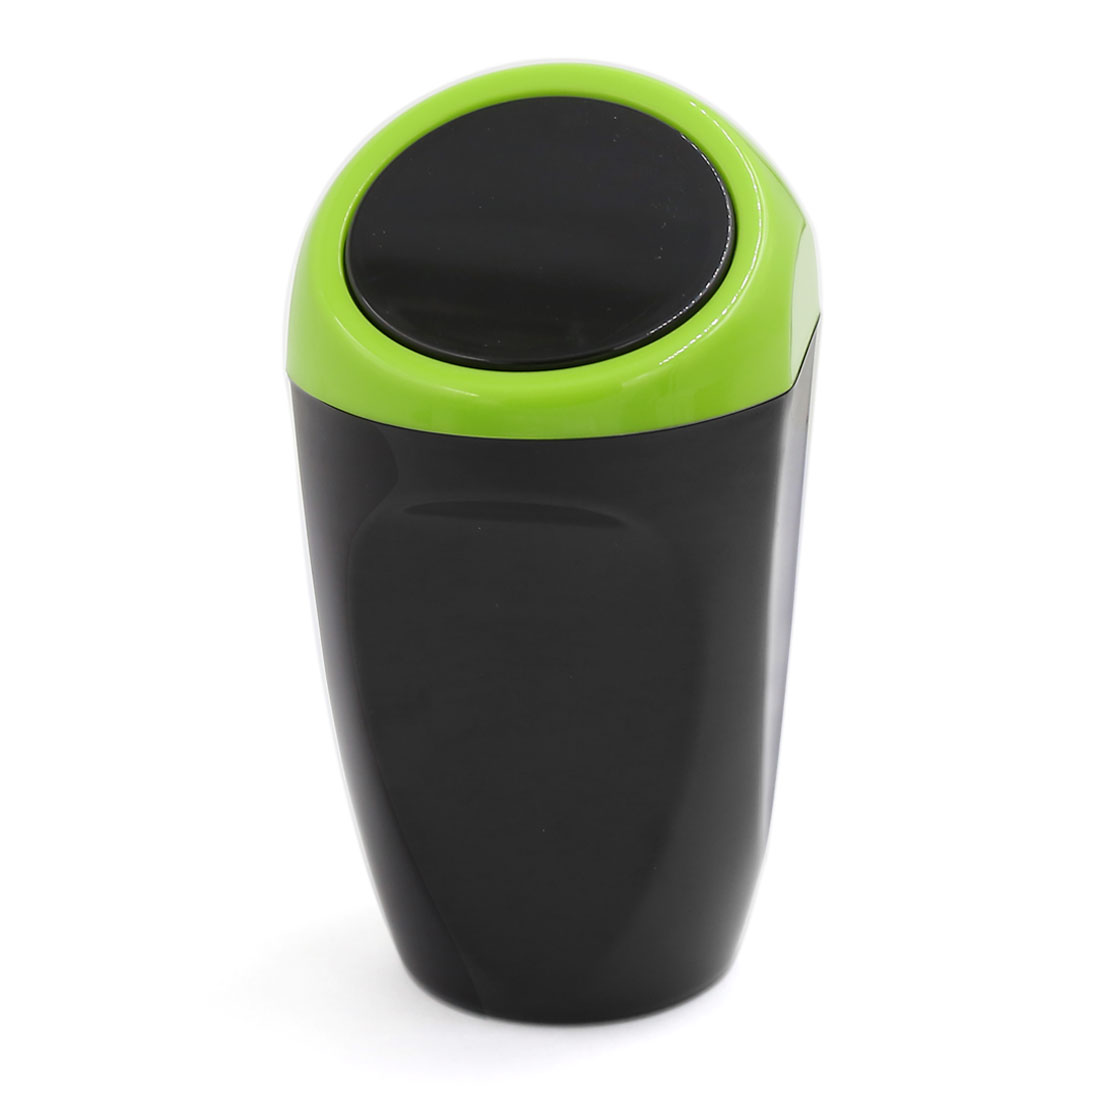 Plastic Mini Ashtray Trash Rubbish Bin Can Garbage Dust Dustbin Case Holder for Home Car Vehicle